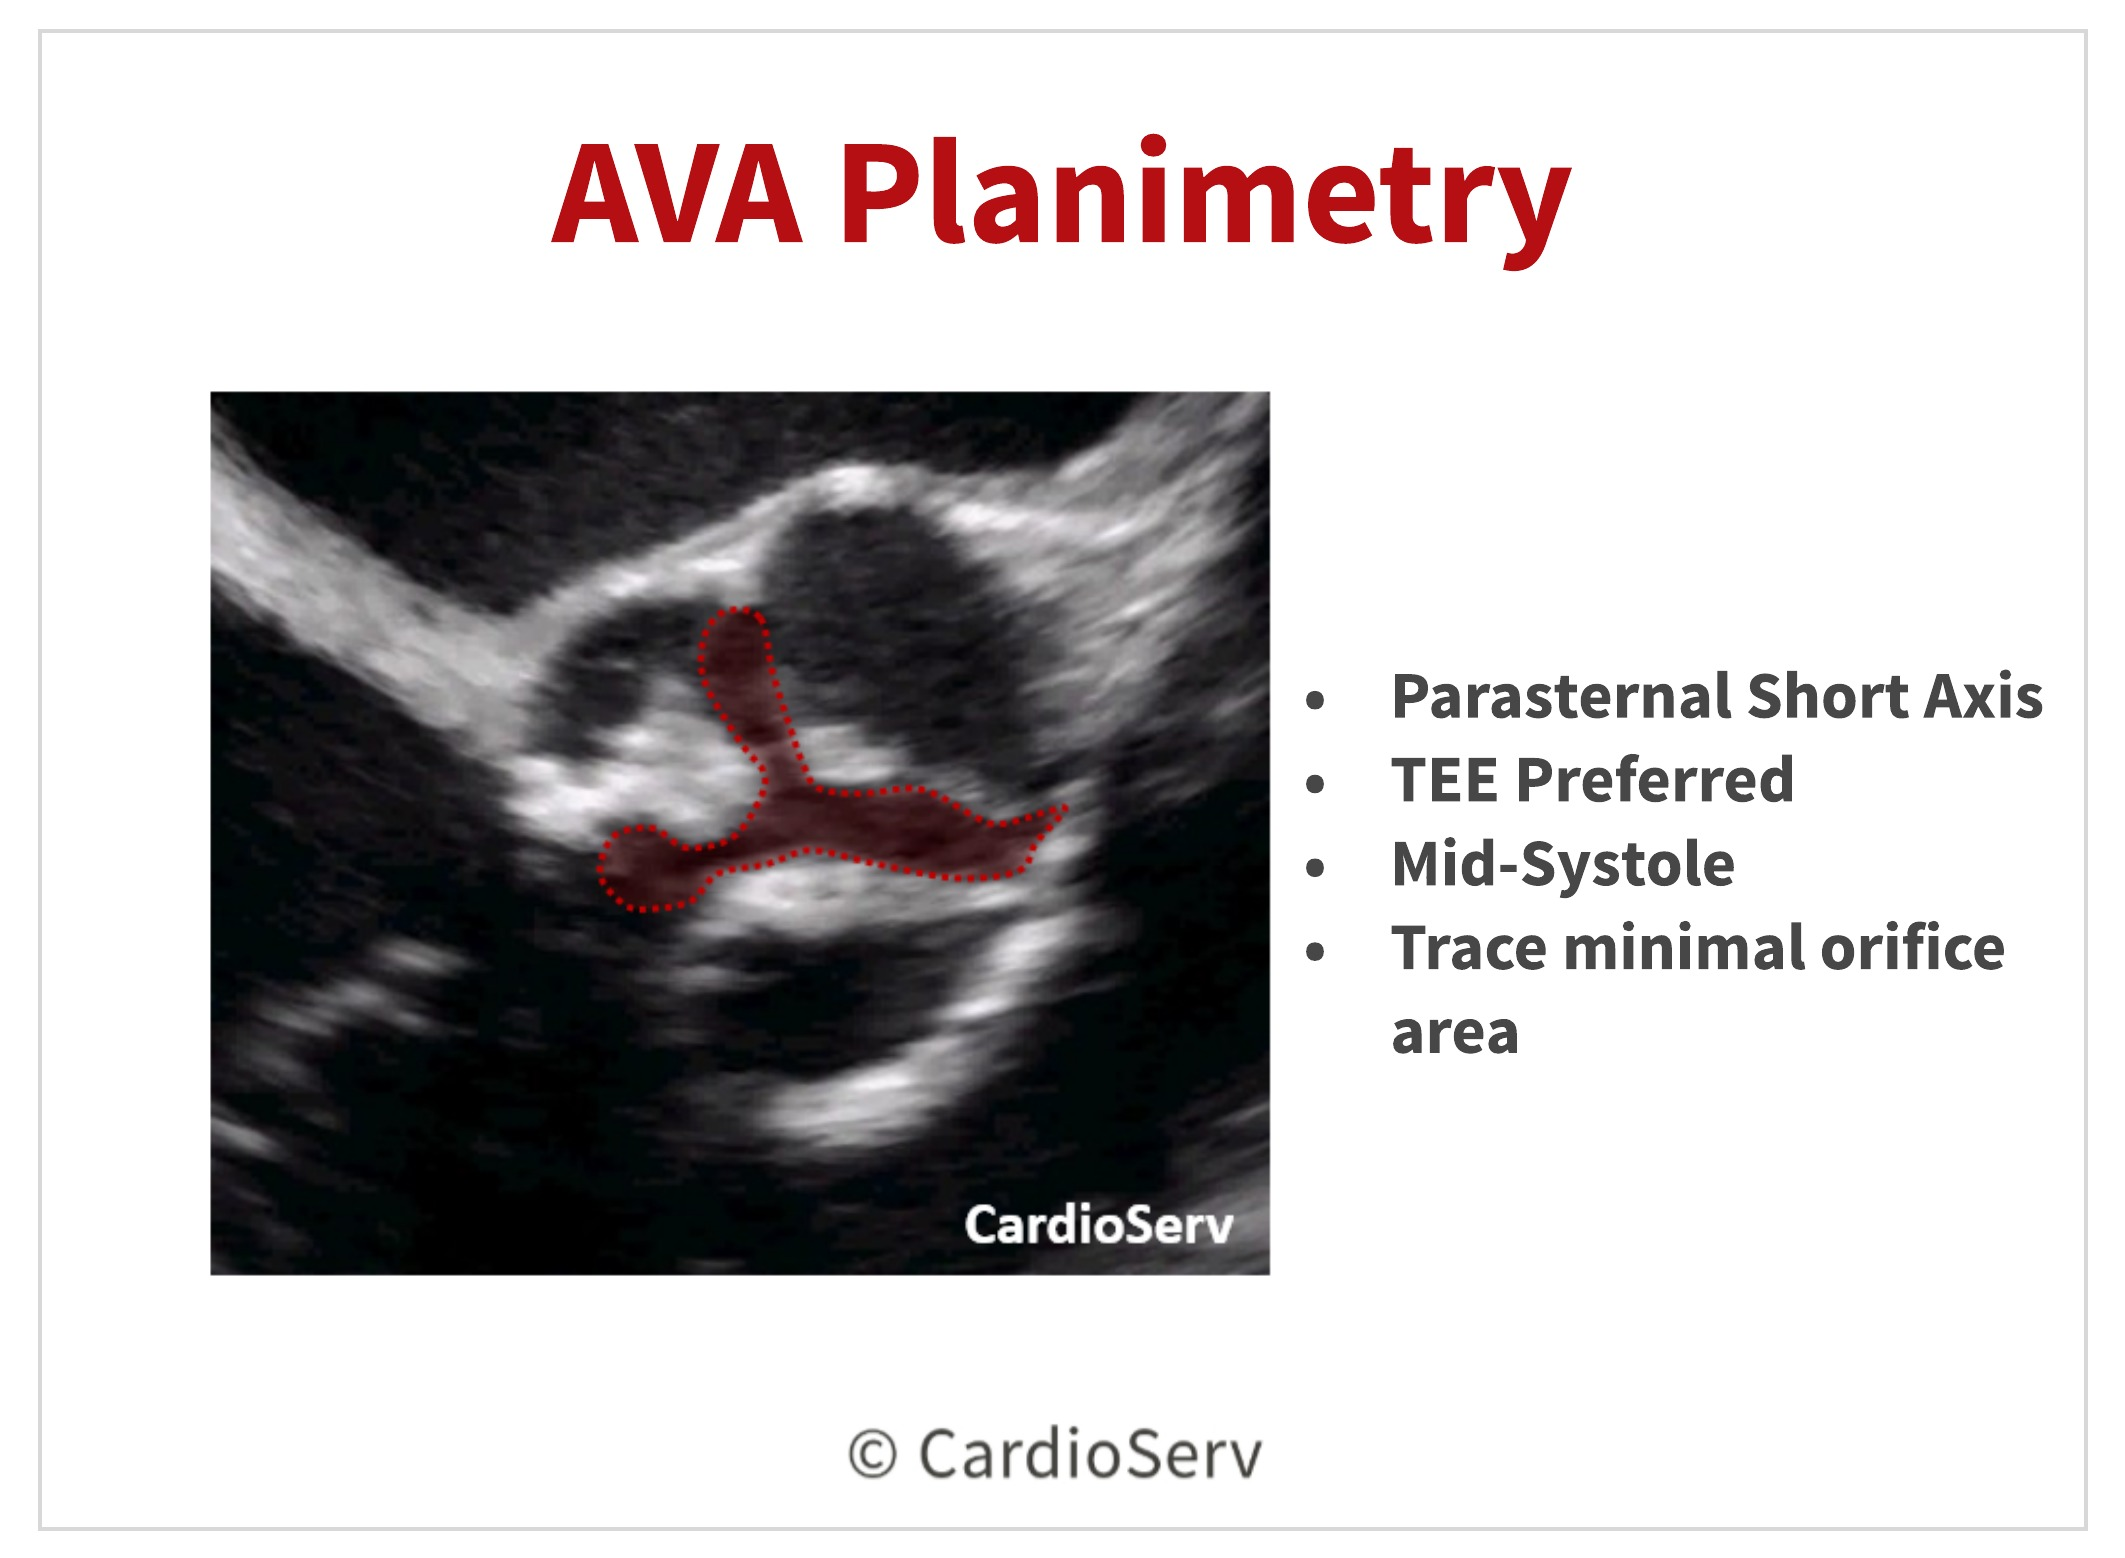 AVA Planimetry Echo Aortic Stenosis